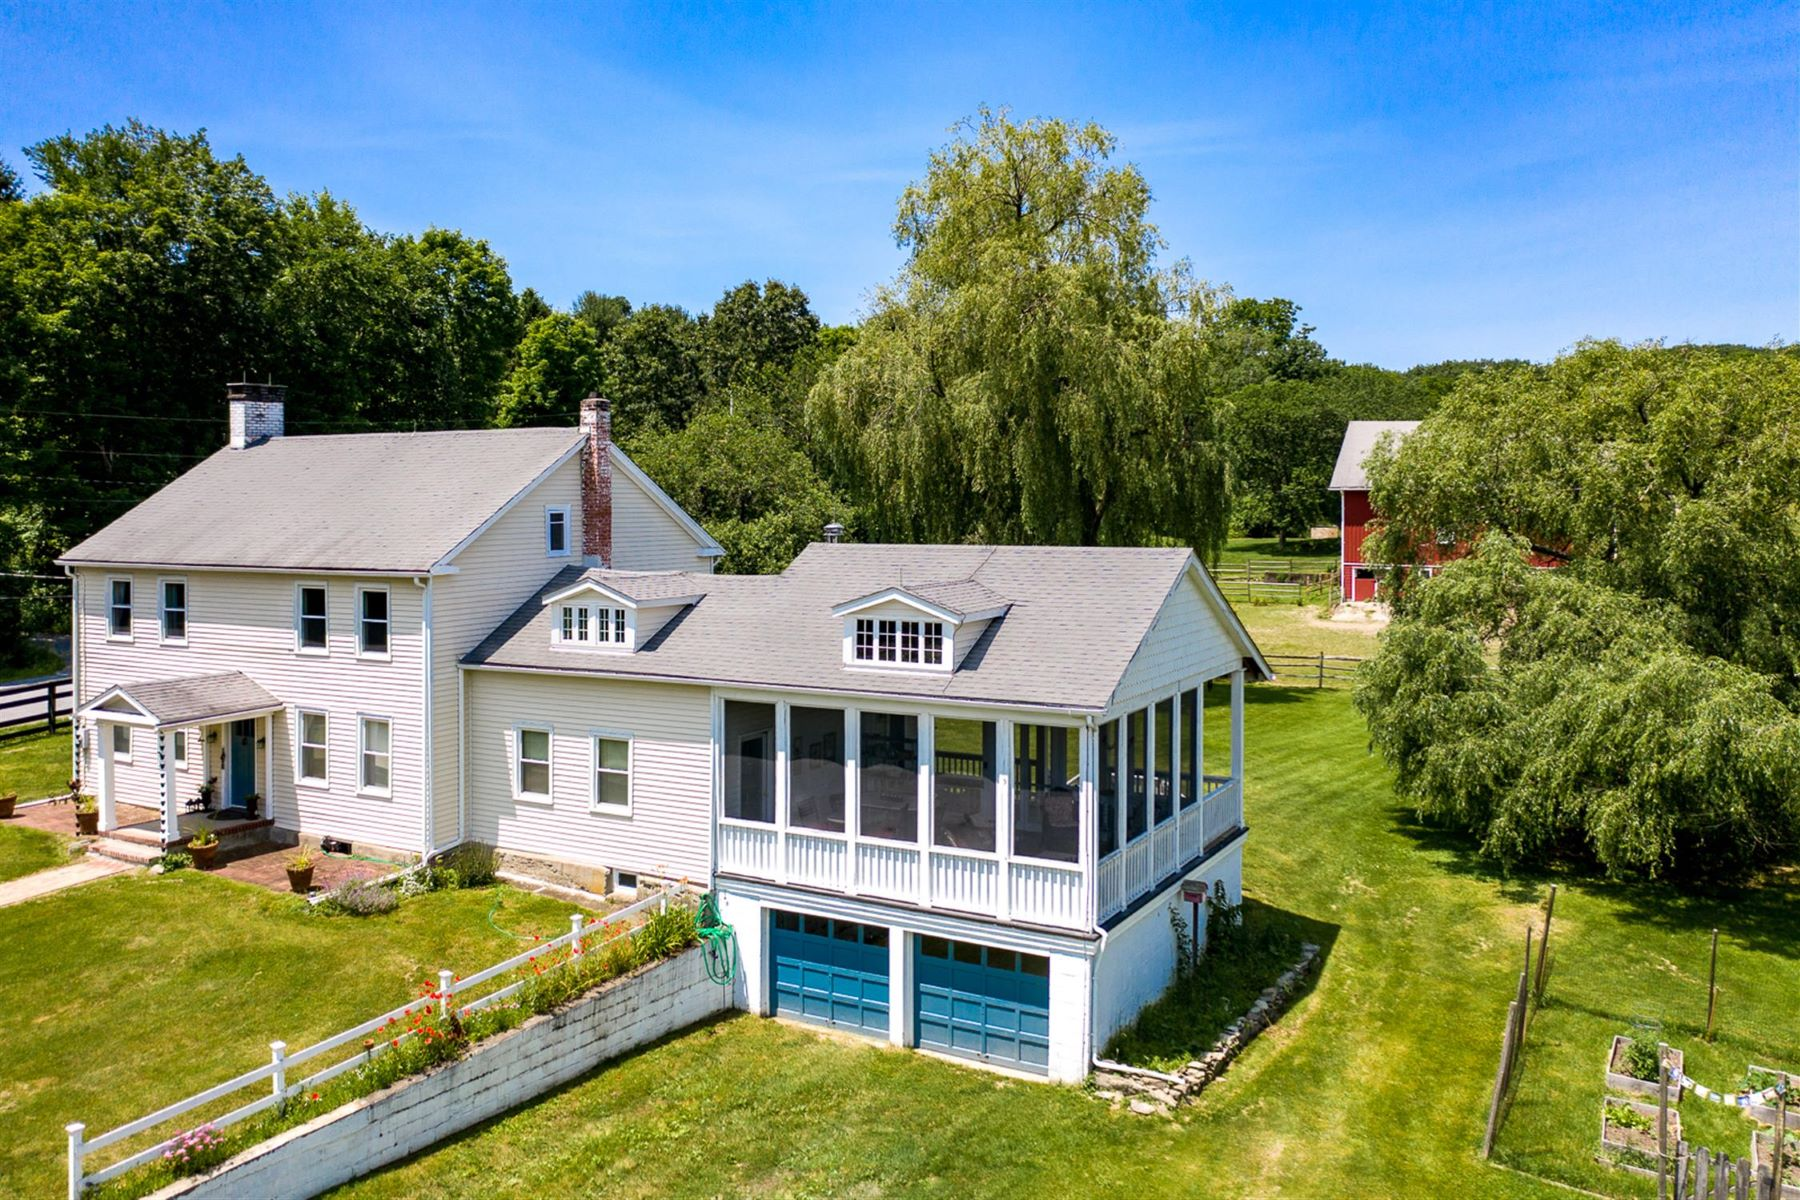 Single Family Homes for Active at Schoolhouse Farm 260 Schoolhouse Rd Staatsburg, New York 12580 United States